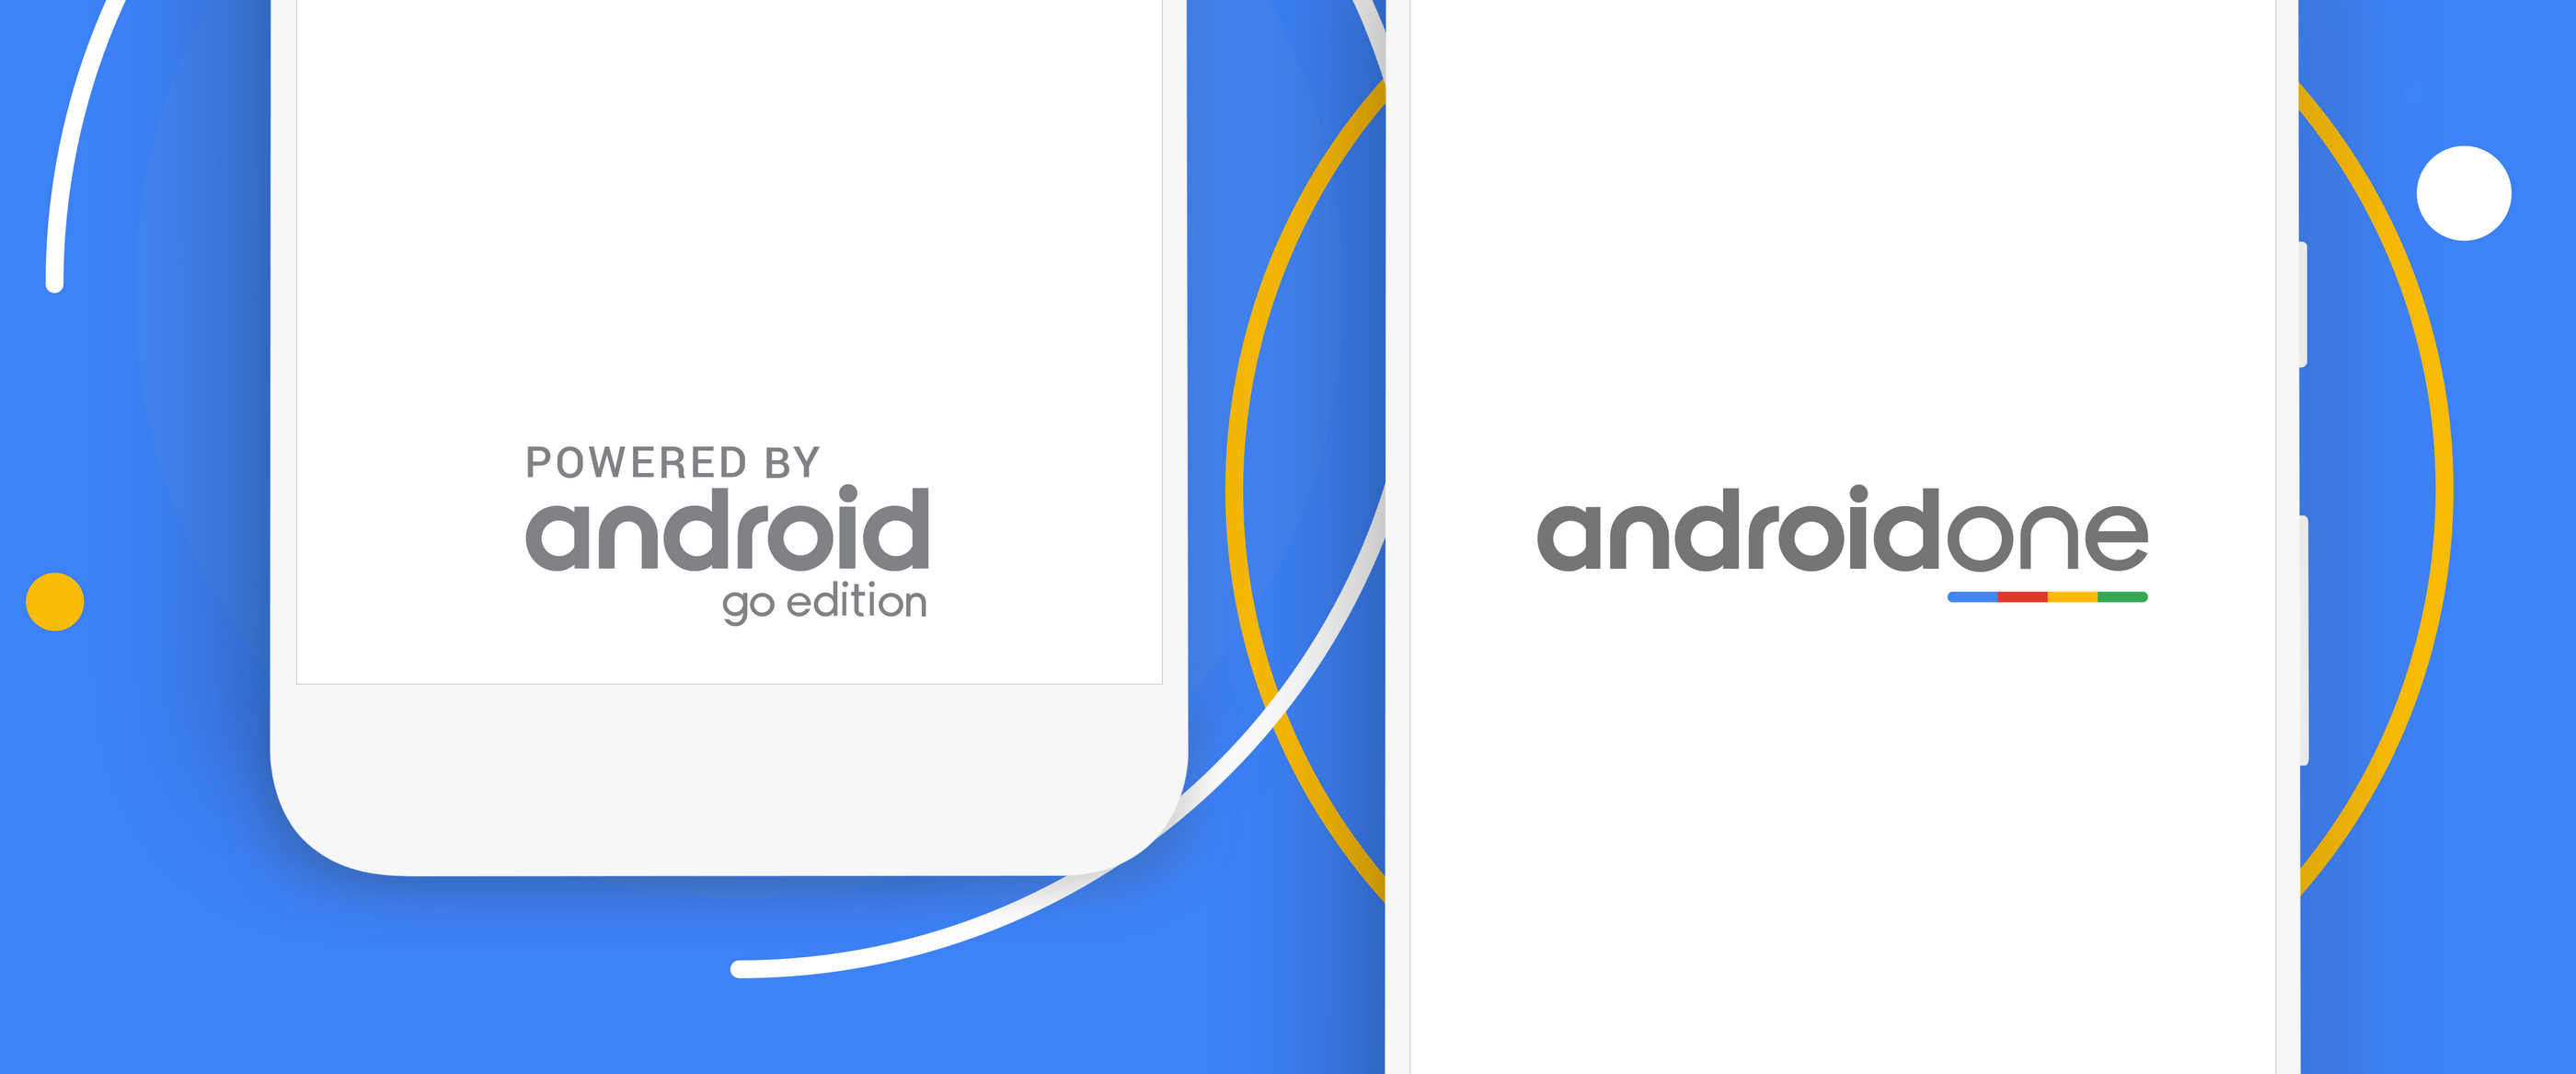 androidone.png